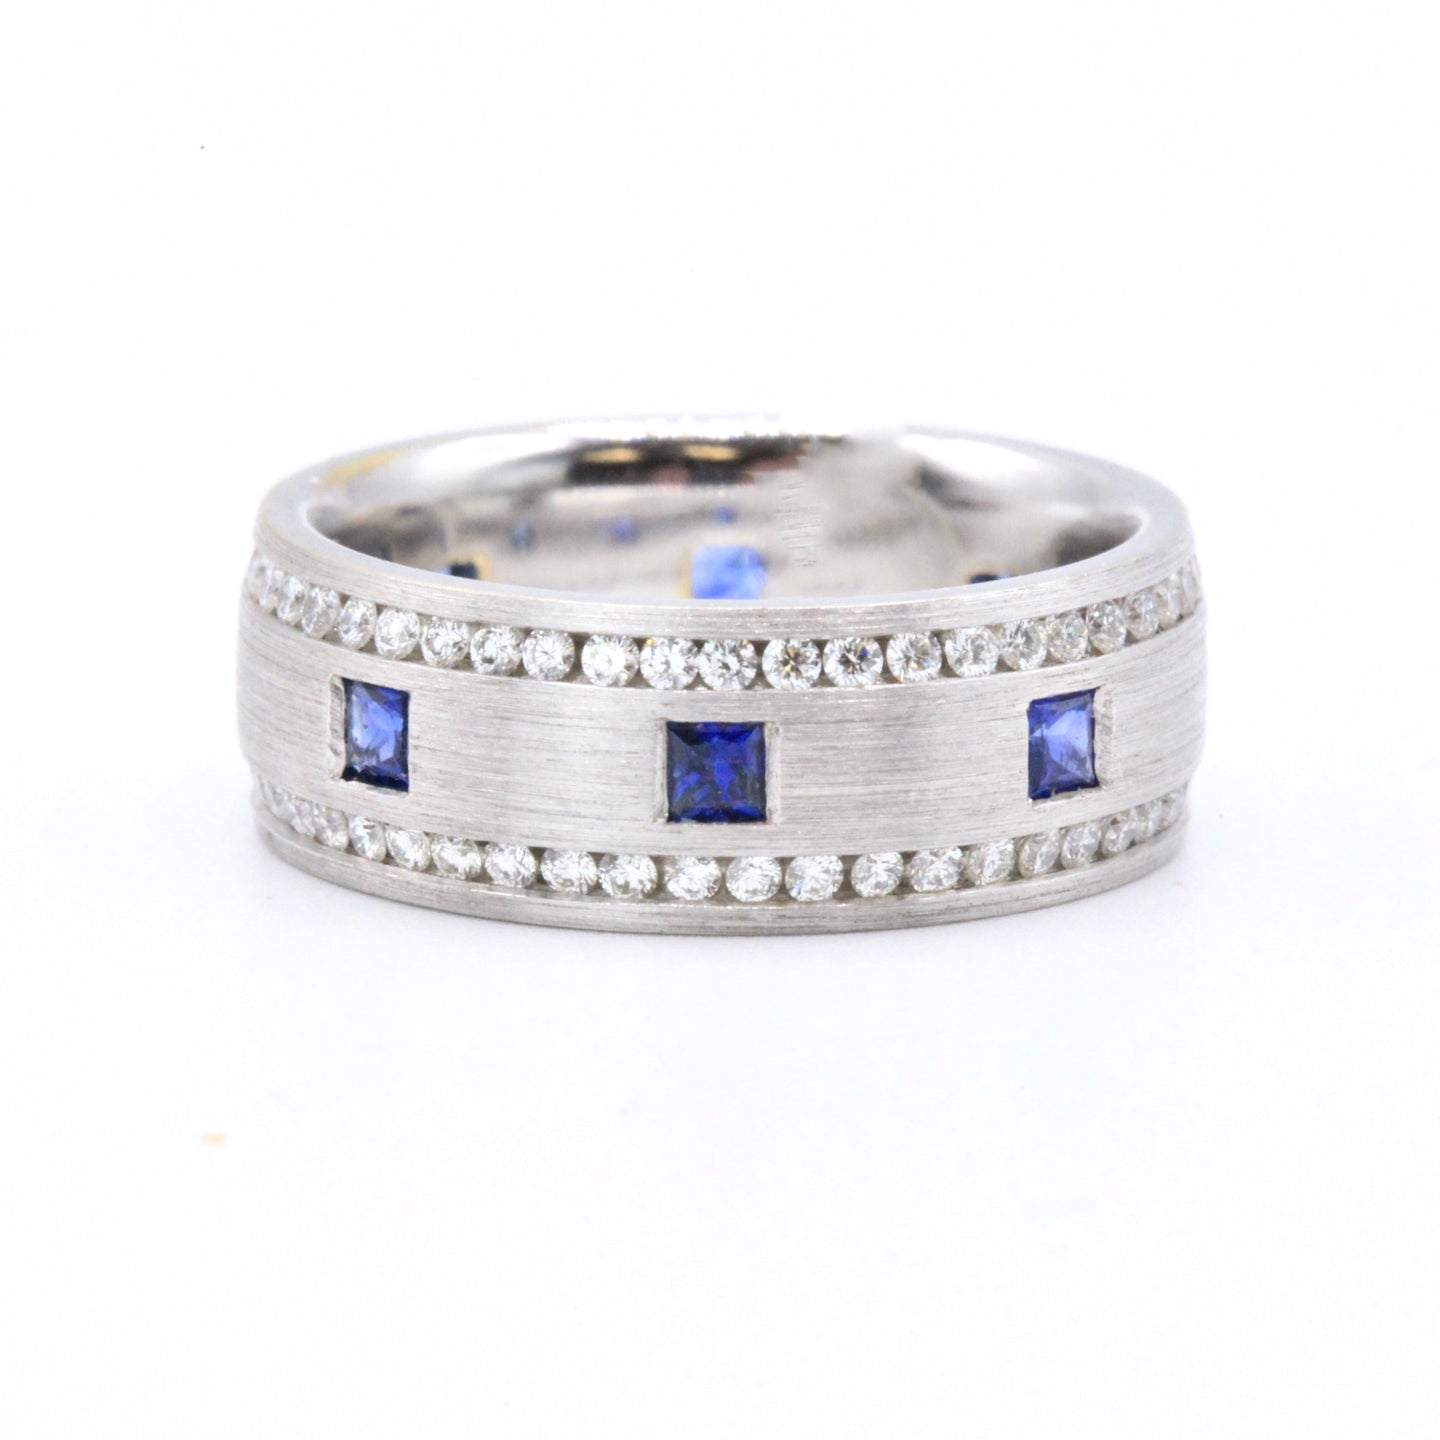 18K White Gold Brushed Finish Band with Sapphires and Diamonds